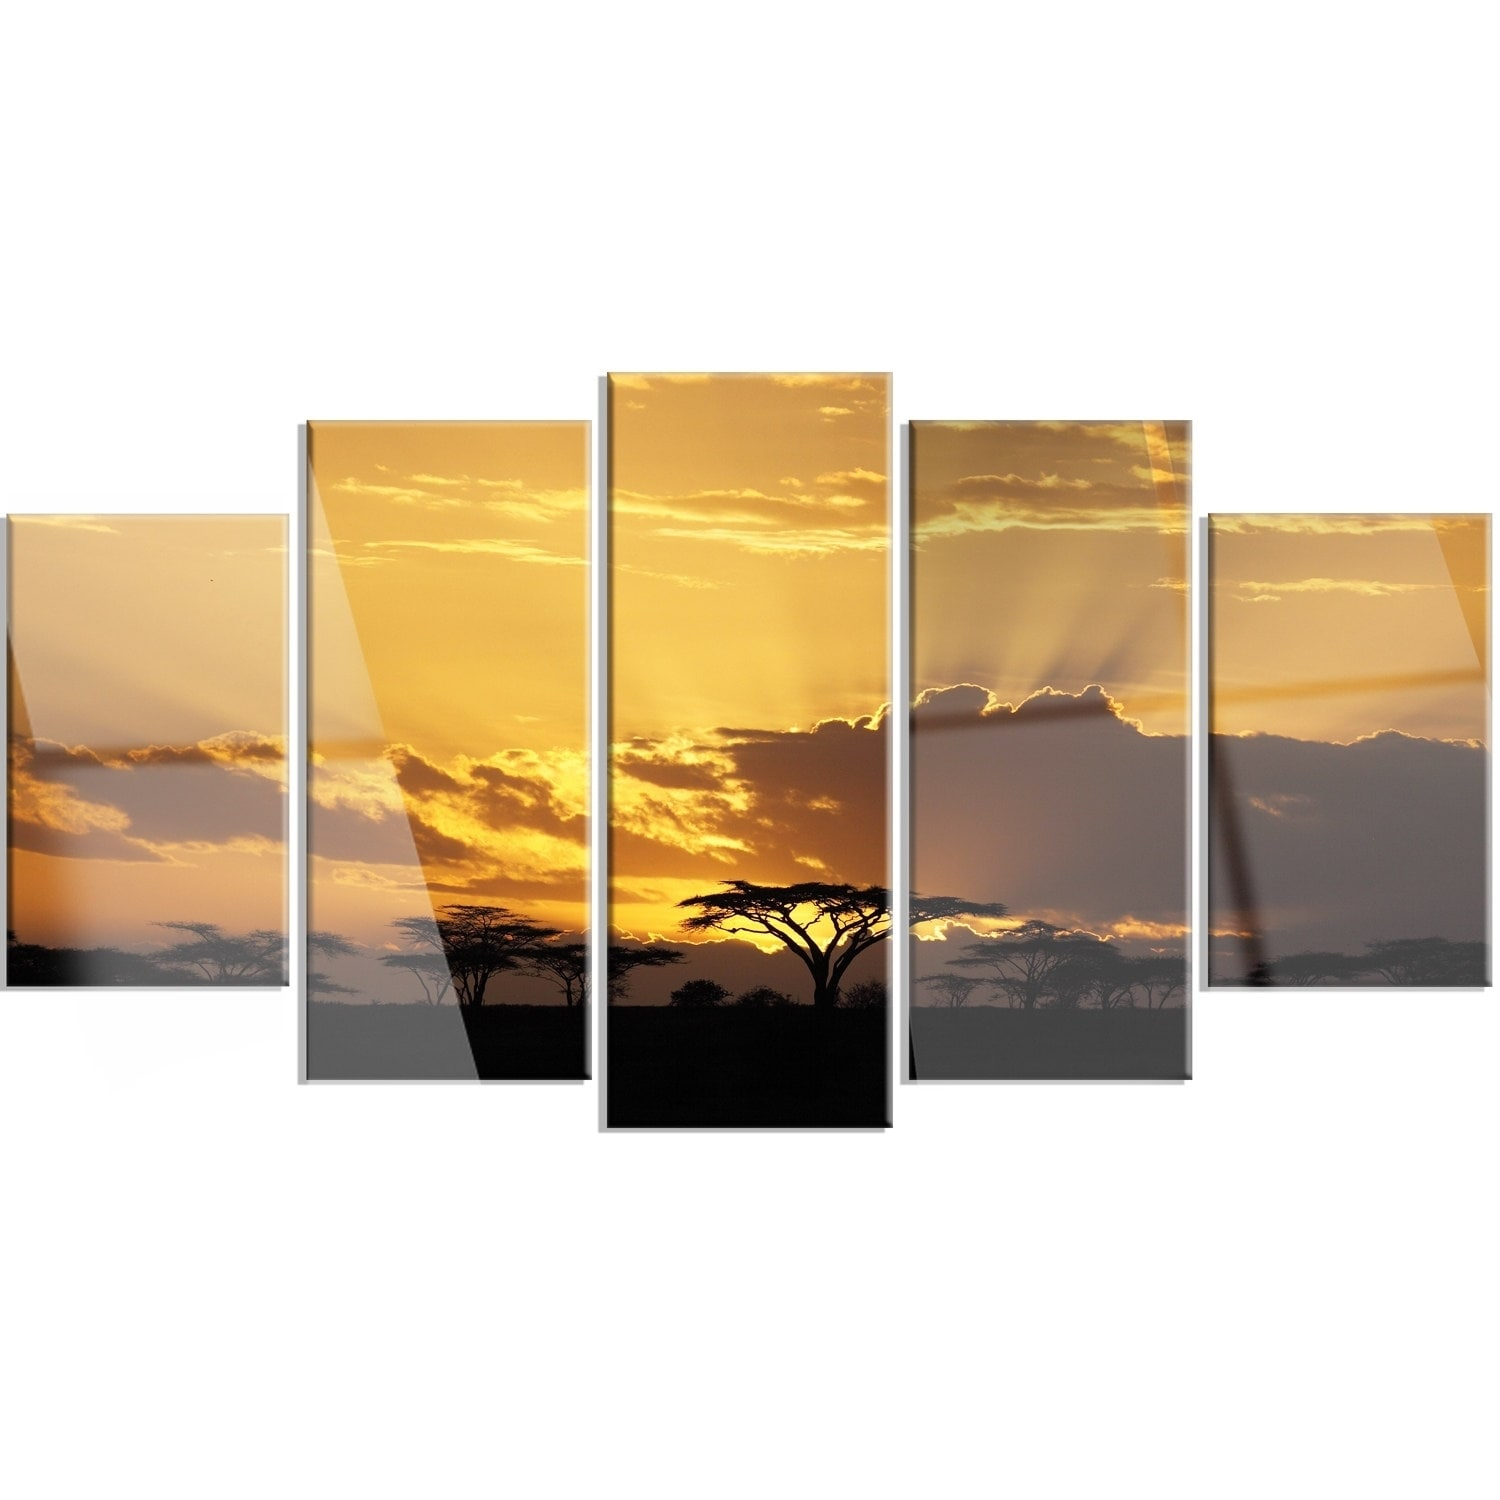 Exelent Metal Wall Art Sale Frieze - The Wall Art Decorations ...